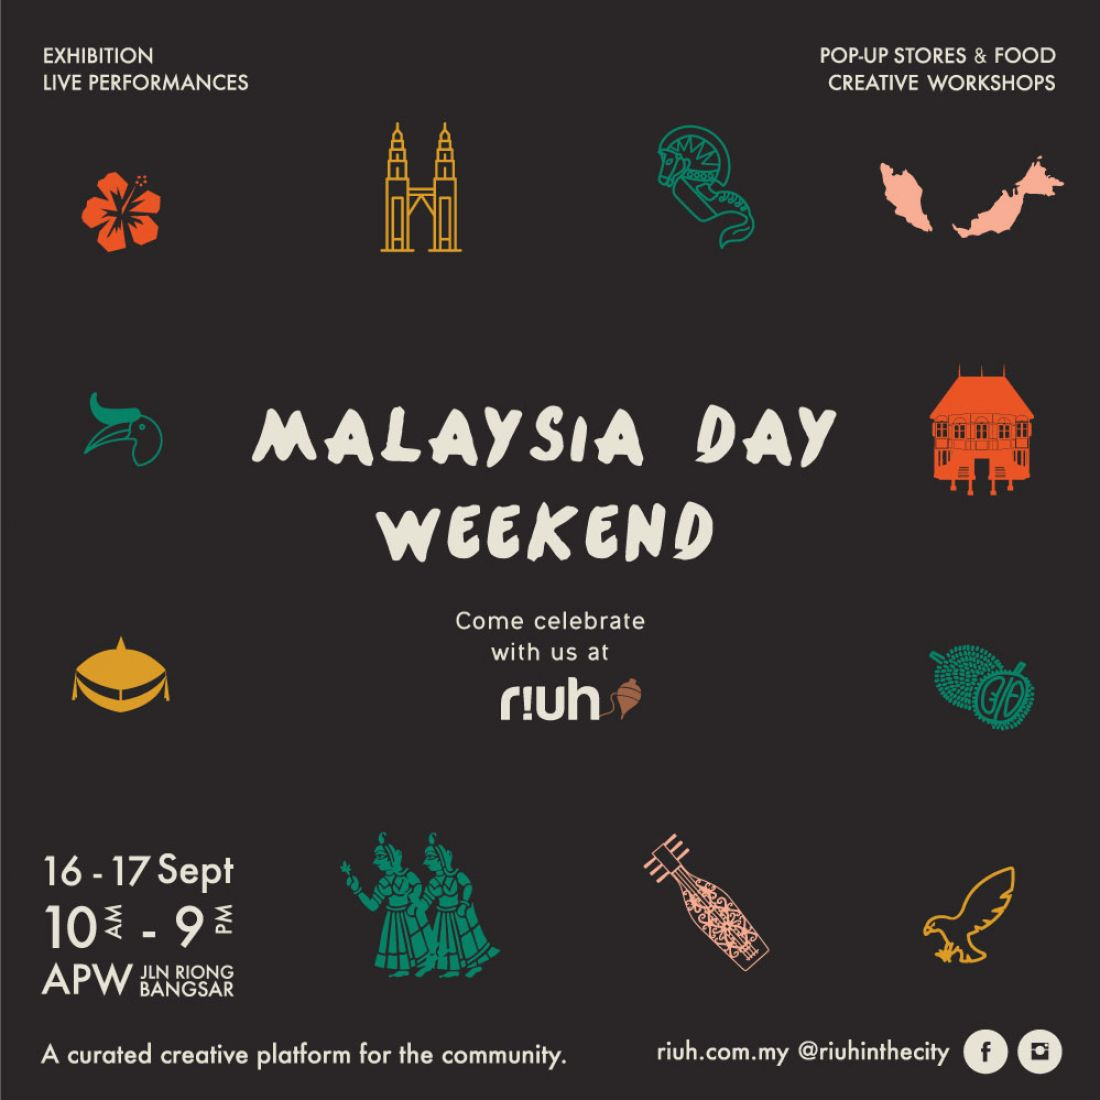 RIUH EVENT | RIUH: Malaysia Day Weekend